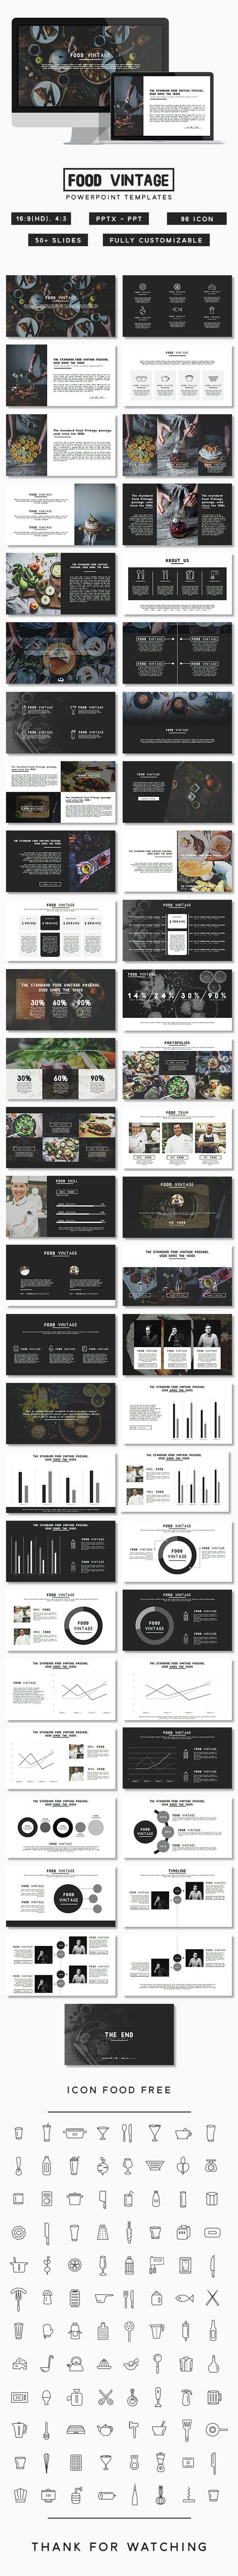 Food Vintage Presentation (PowerPoint Templates):